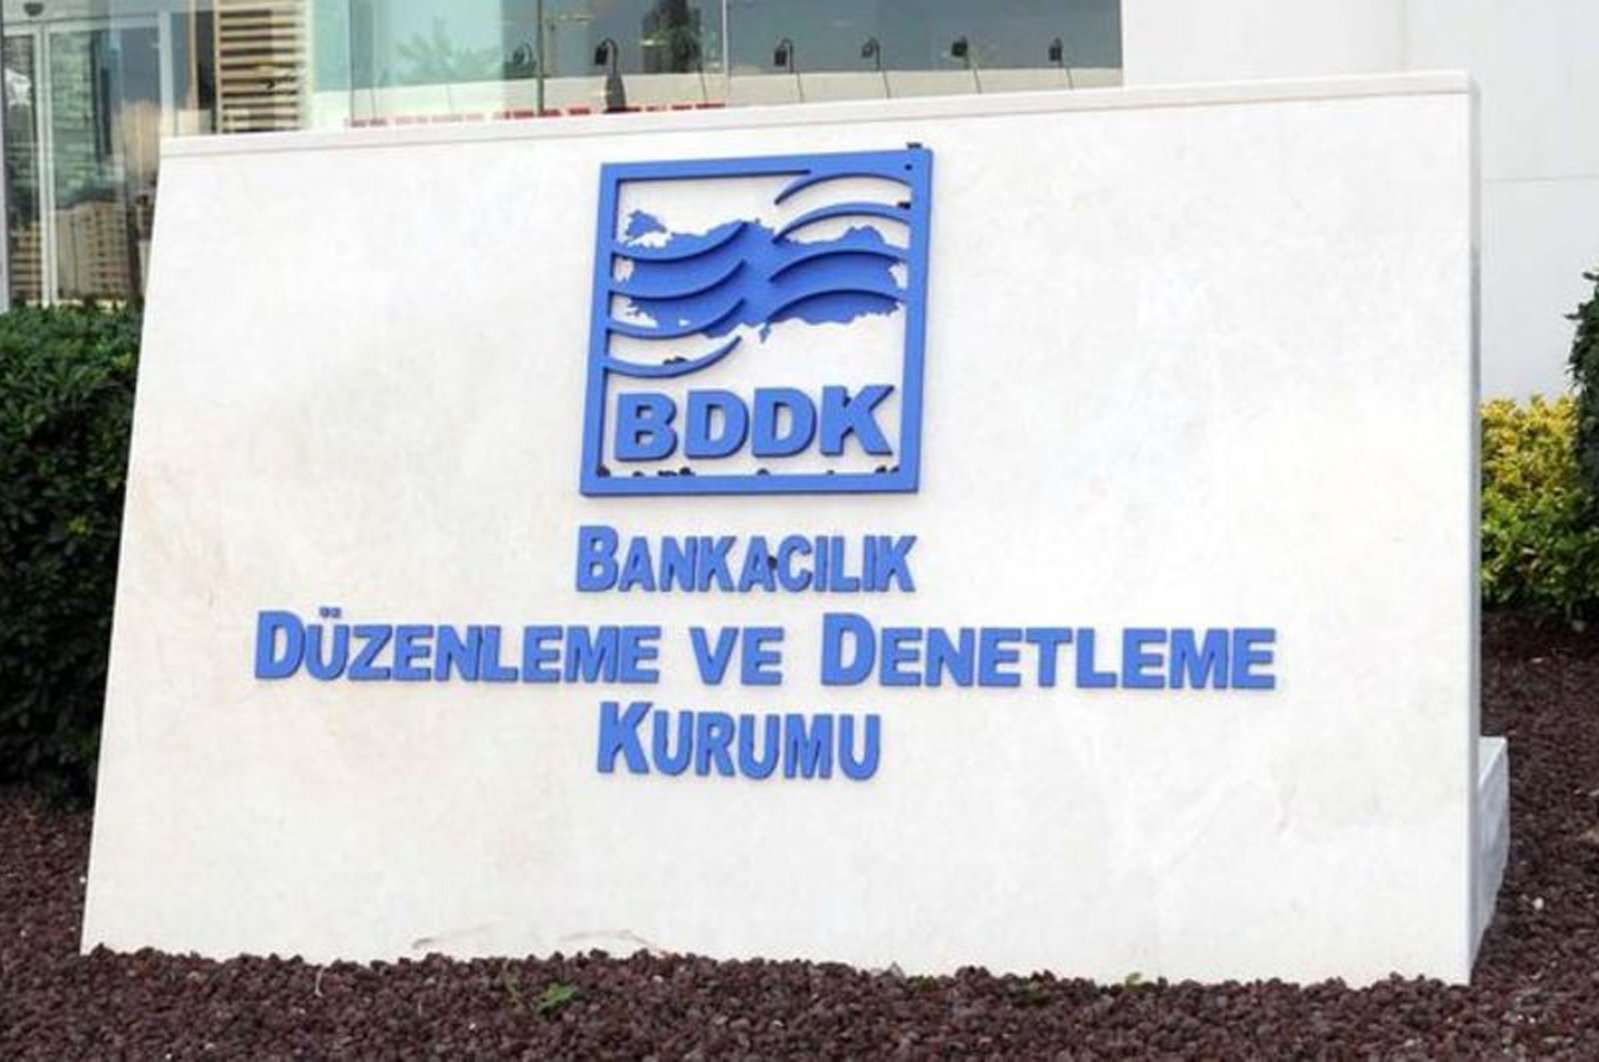 The Banking Regulation and Supervision Agency's (BDDK) logo is seen in front of its headquarters in Istanbul, Turkey, Jan. 21, 2017. (File Photo)